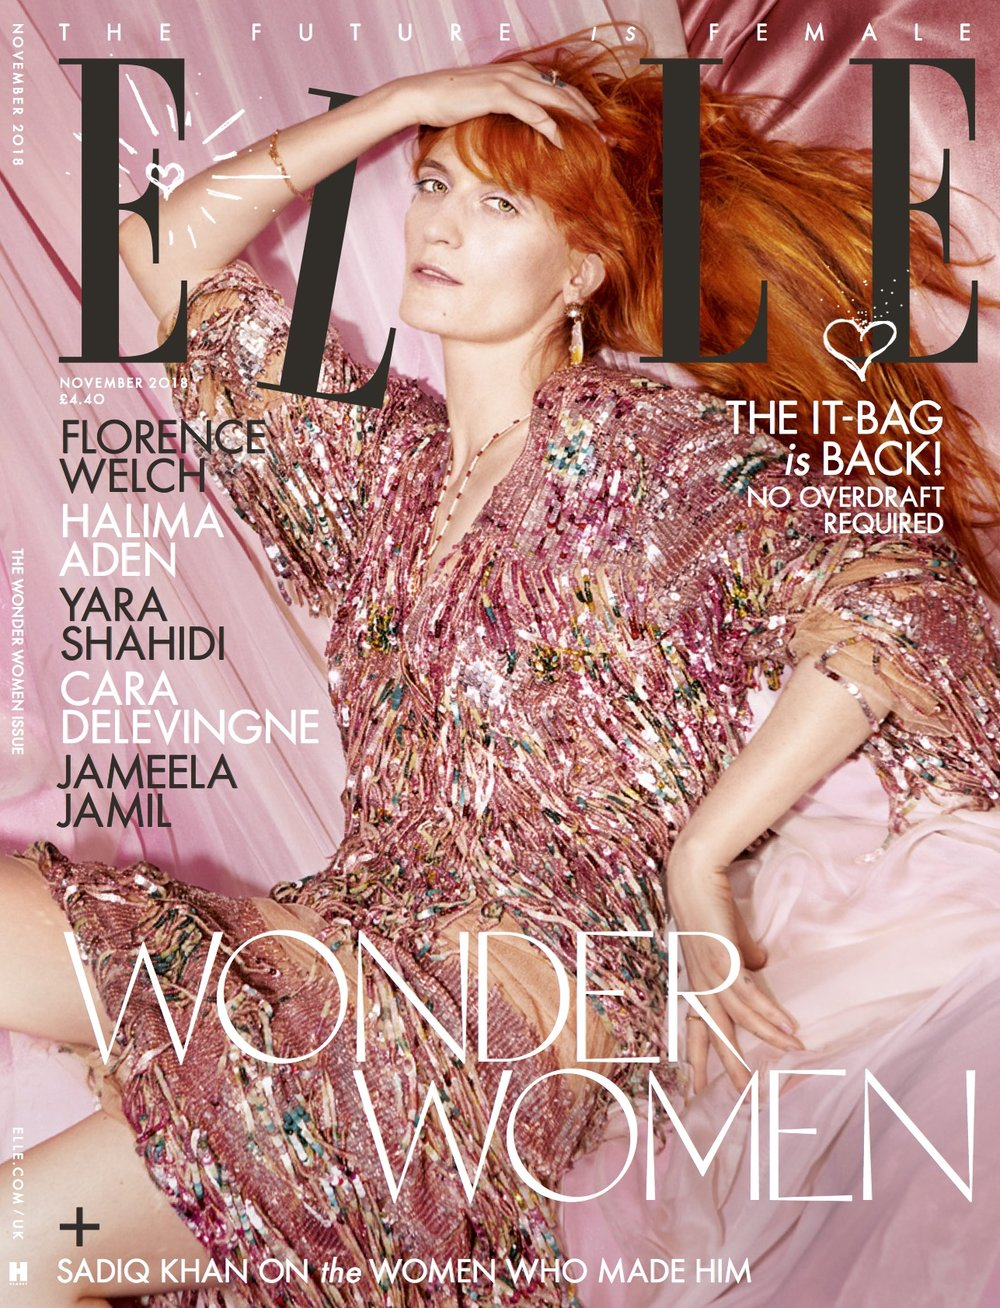 Florence ELLE cover feature (cover).jpg